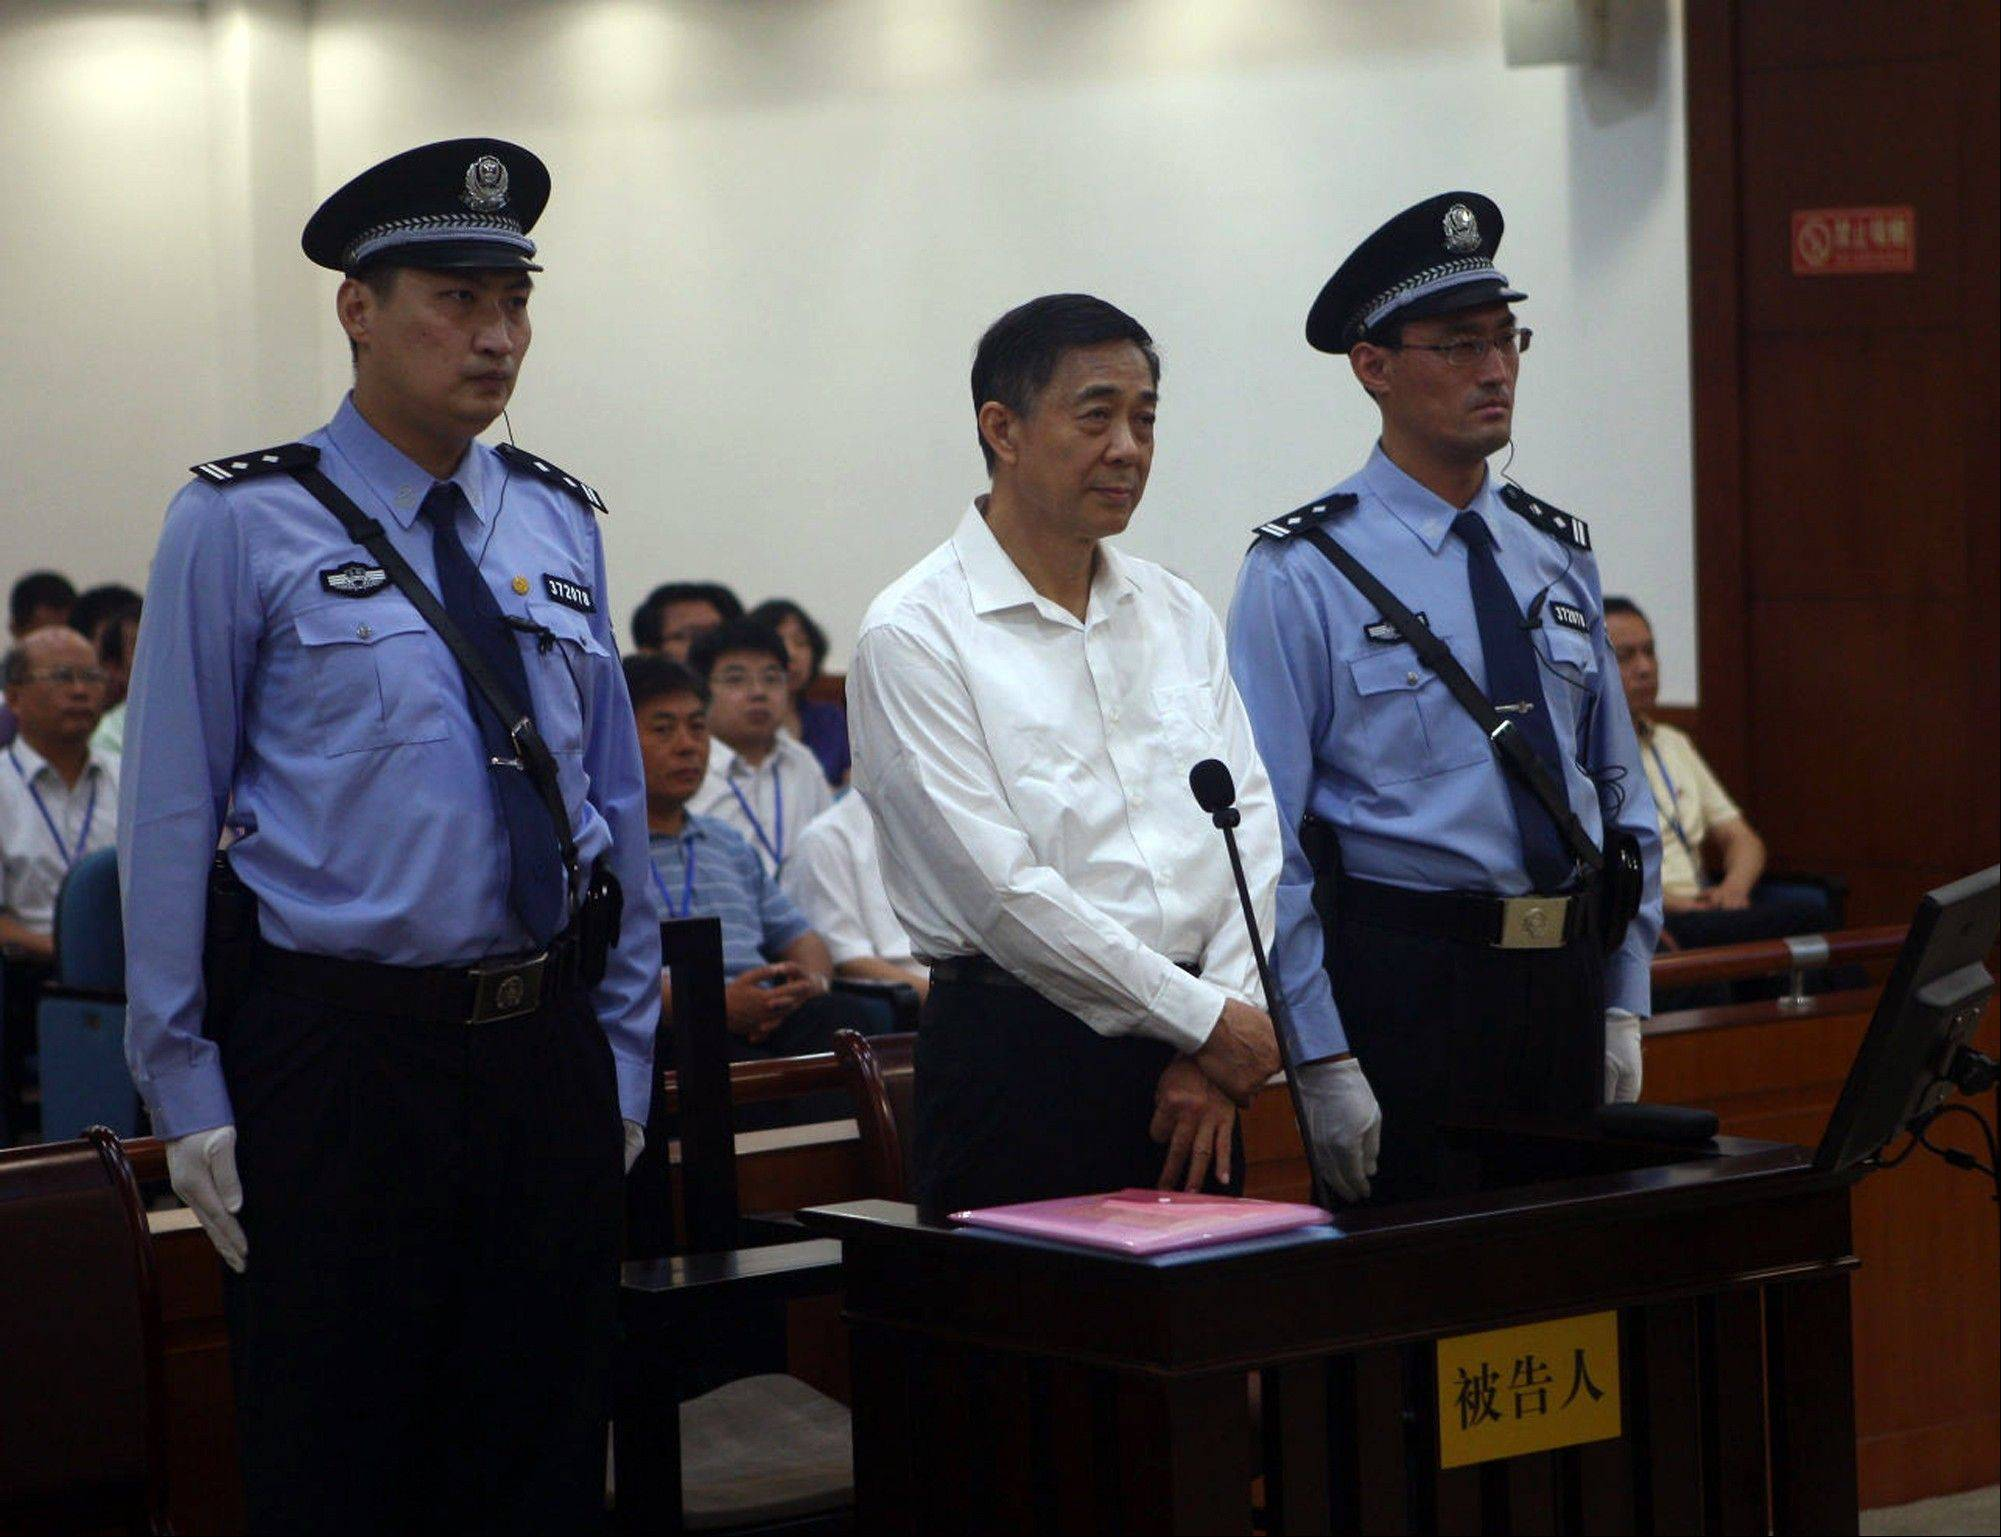 In this photo released Thursday by the Jinan Intermediate People's Court, Bo Xilai, center, stands on trial at the court in eastern China's Shandong province. The disgraced populist politician went on trial Thursday accused of abuse of power and netting more than $4 million in bribery and embezzlement, marking the ruling Communist Party's attempts to put to rest one of China's most lurid political scandals in decades.